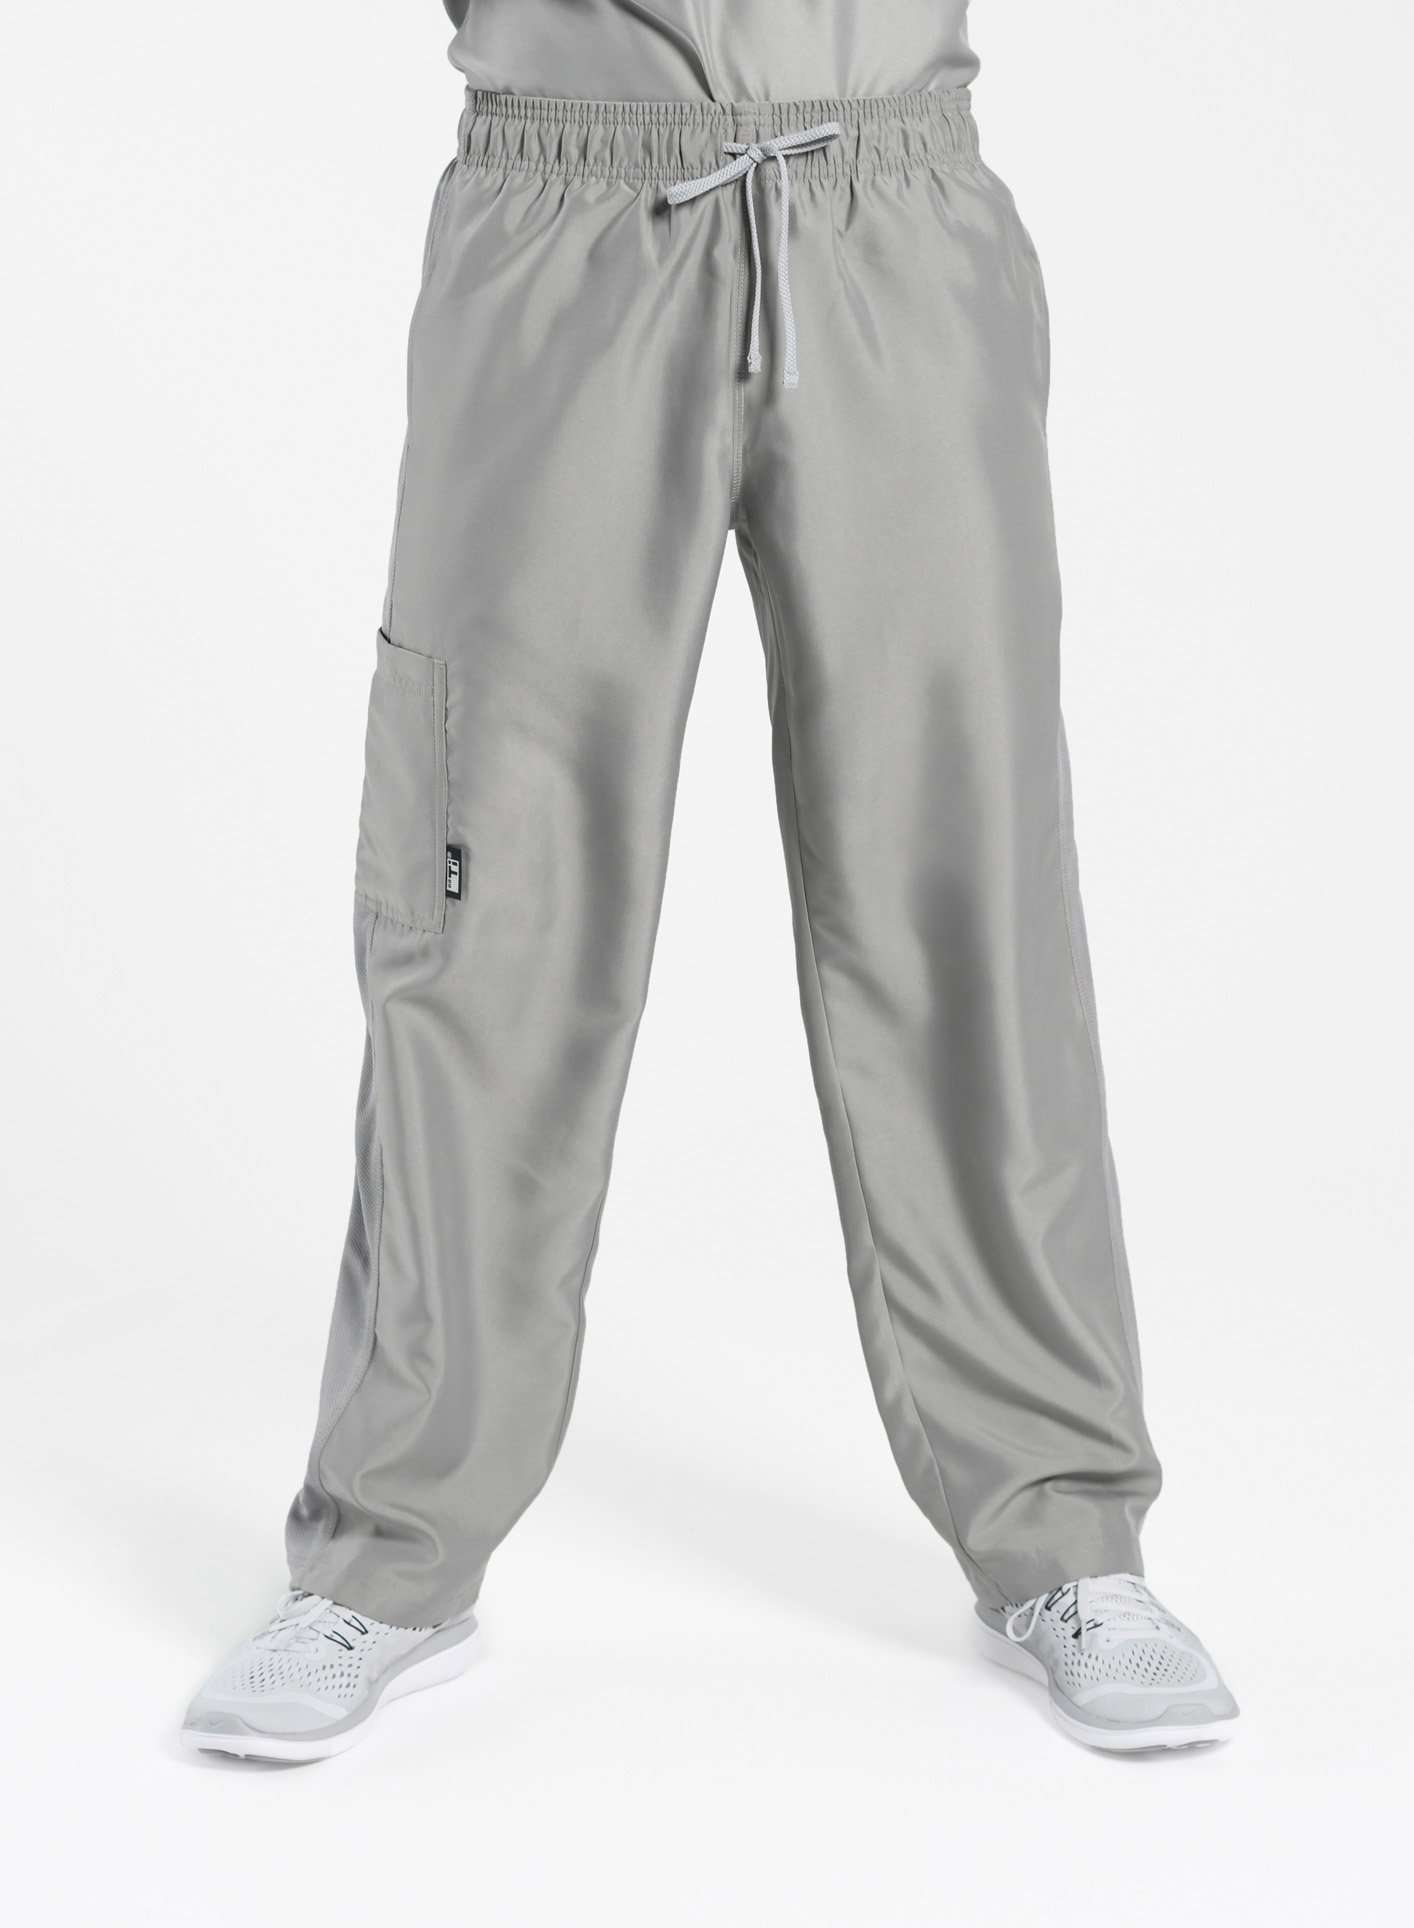 mens Elements short and tall relaxed fit scrub pants light grey